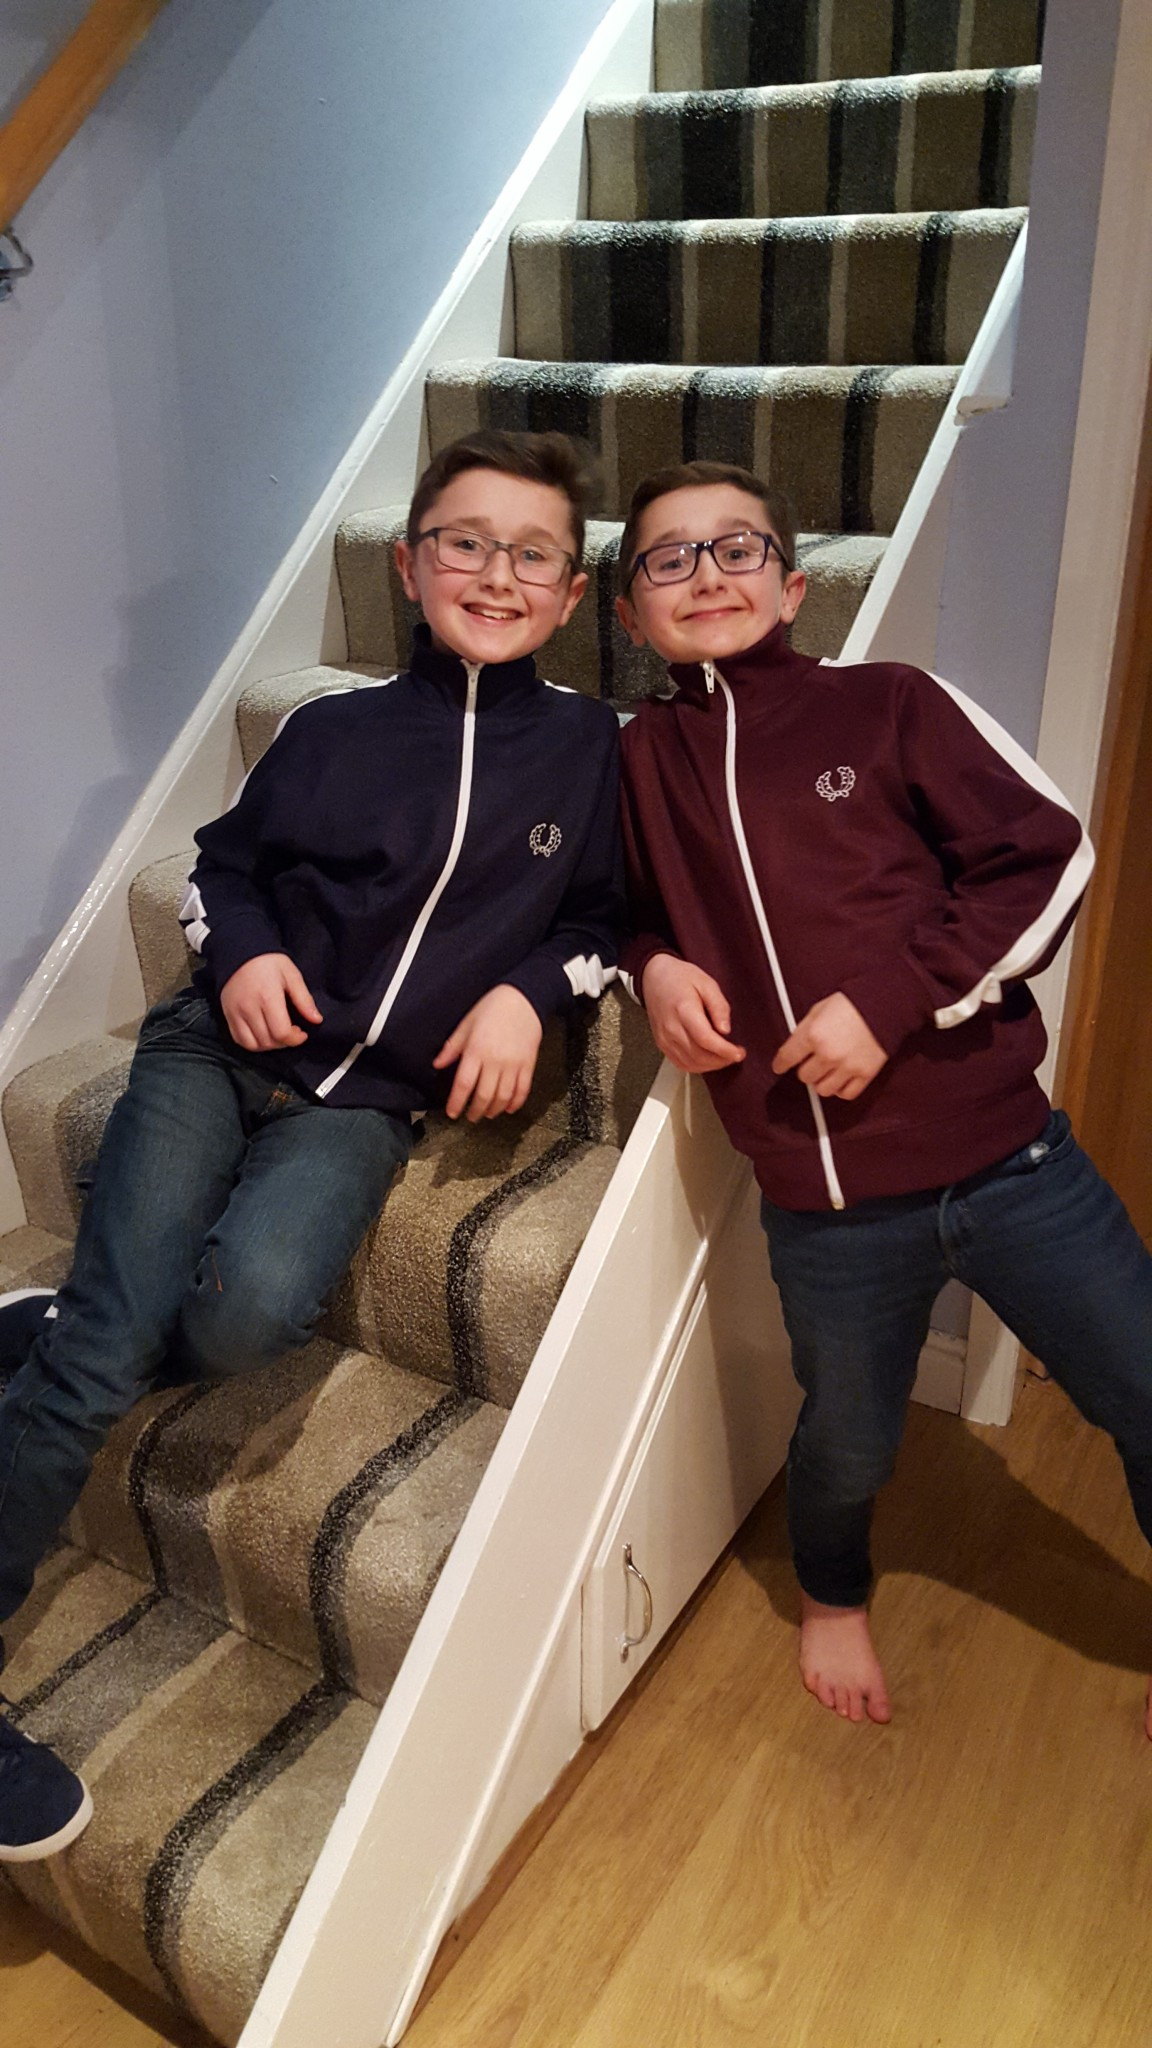 Kai and Ethan sitting on the stairs